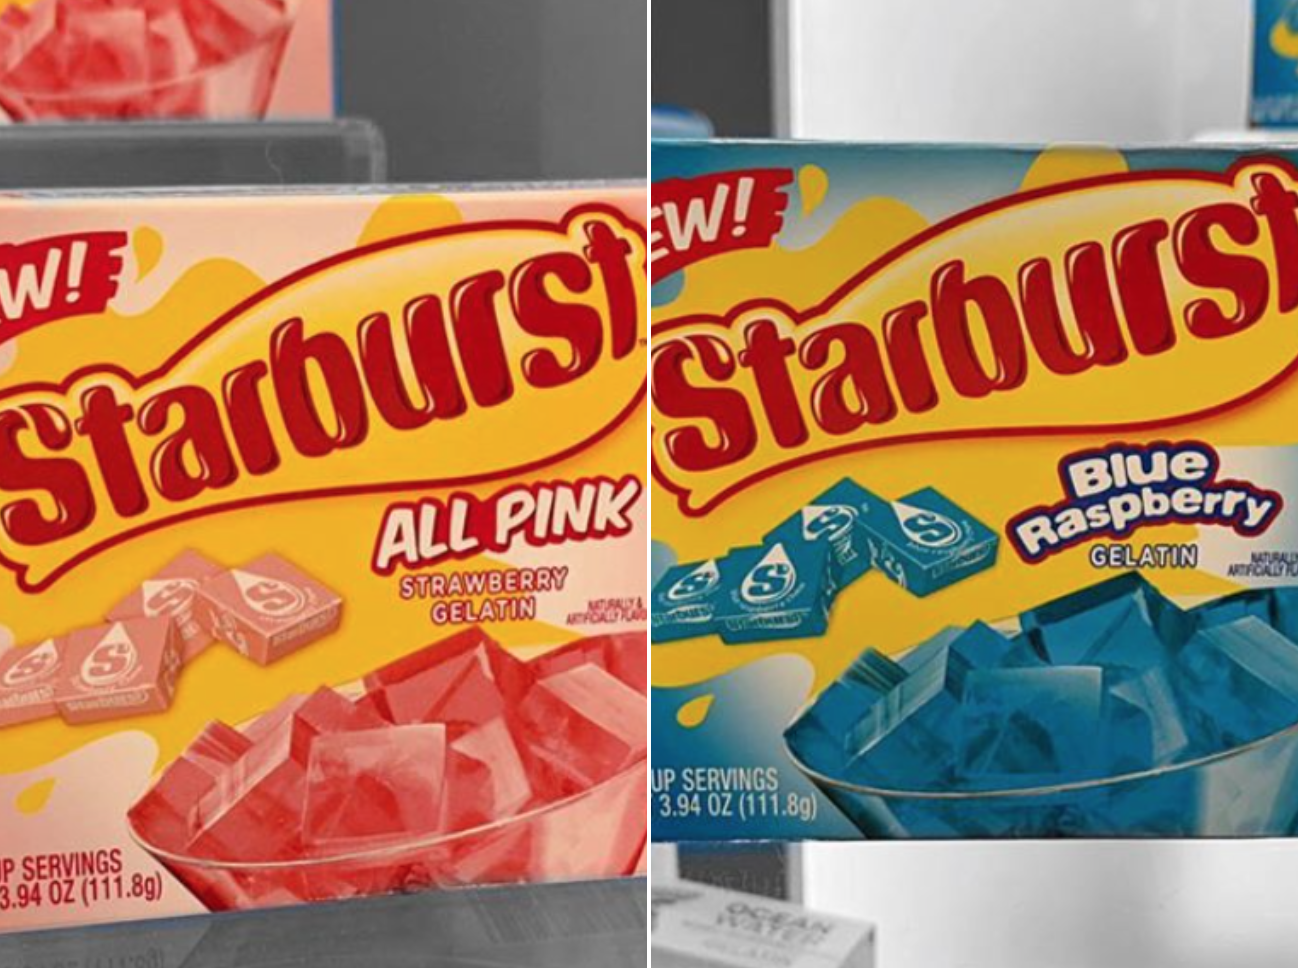 Attention, Jell-O Lovers: Starburst Gelatin Is Happening